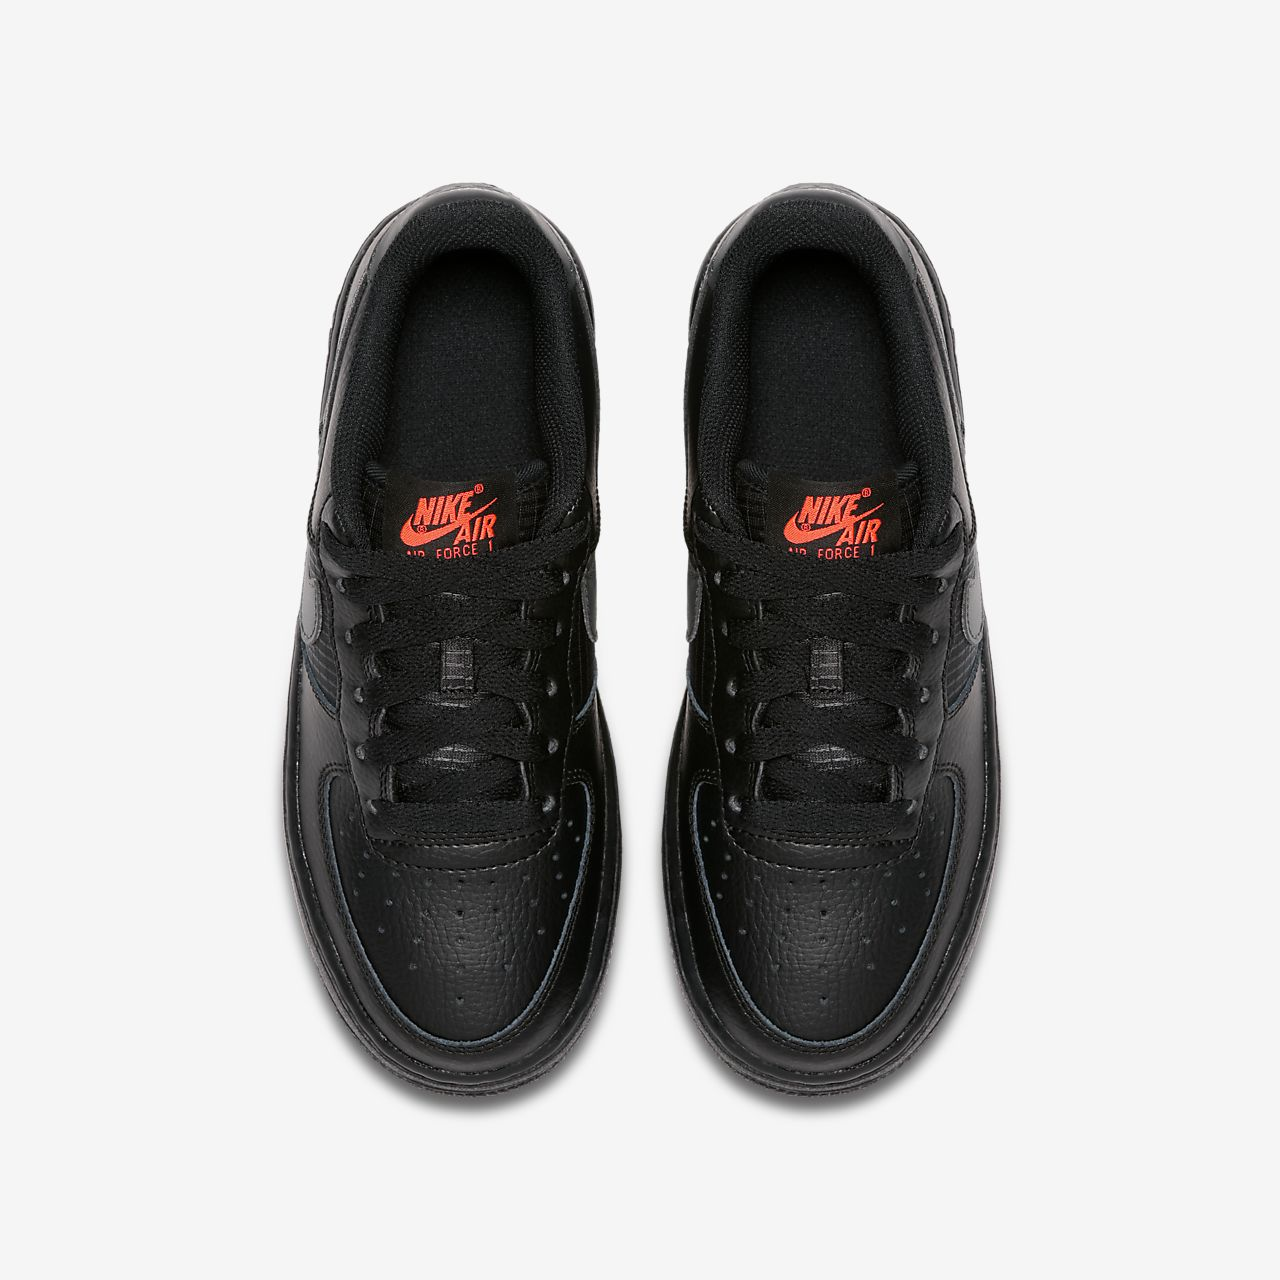 nike air force 1 4.5 nz